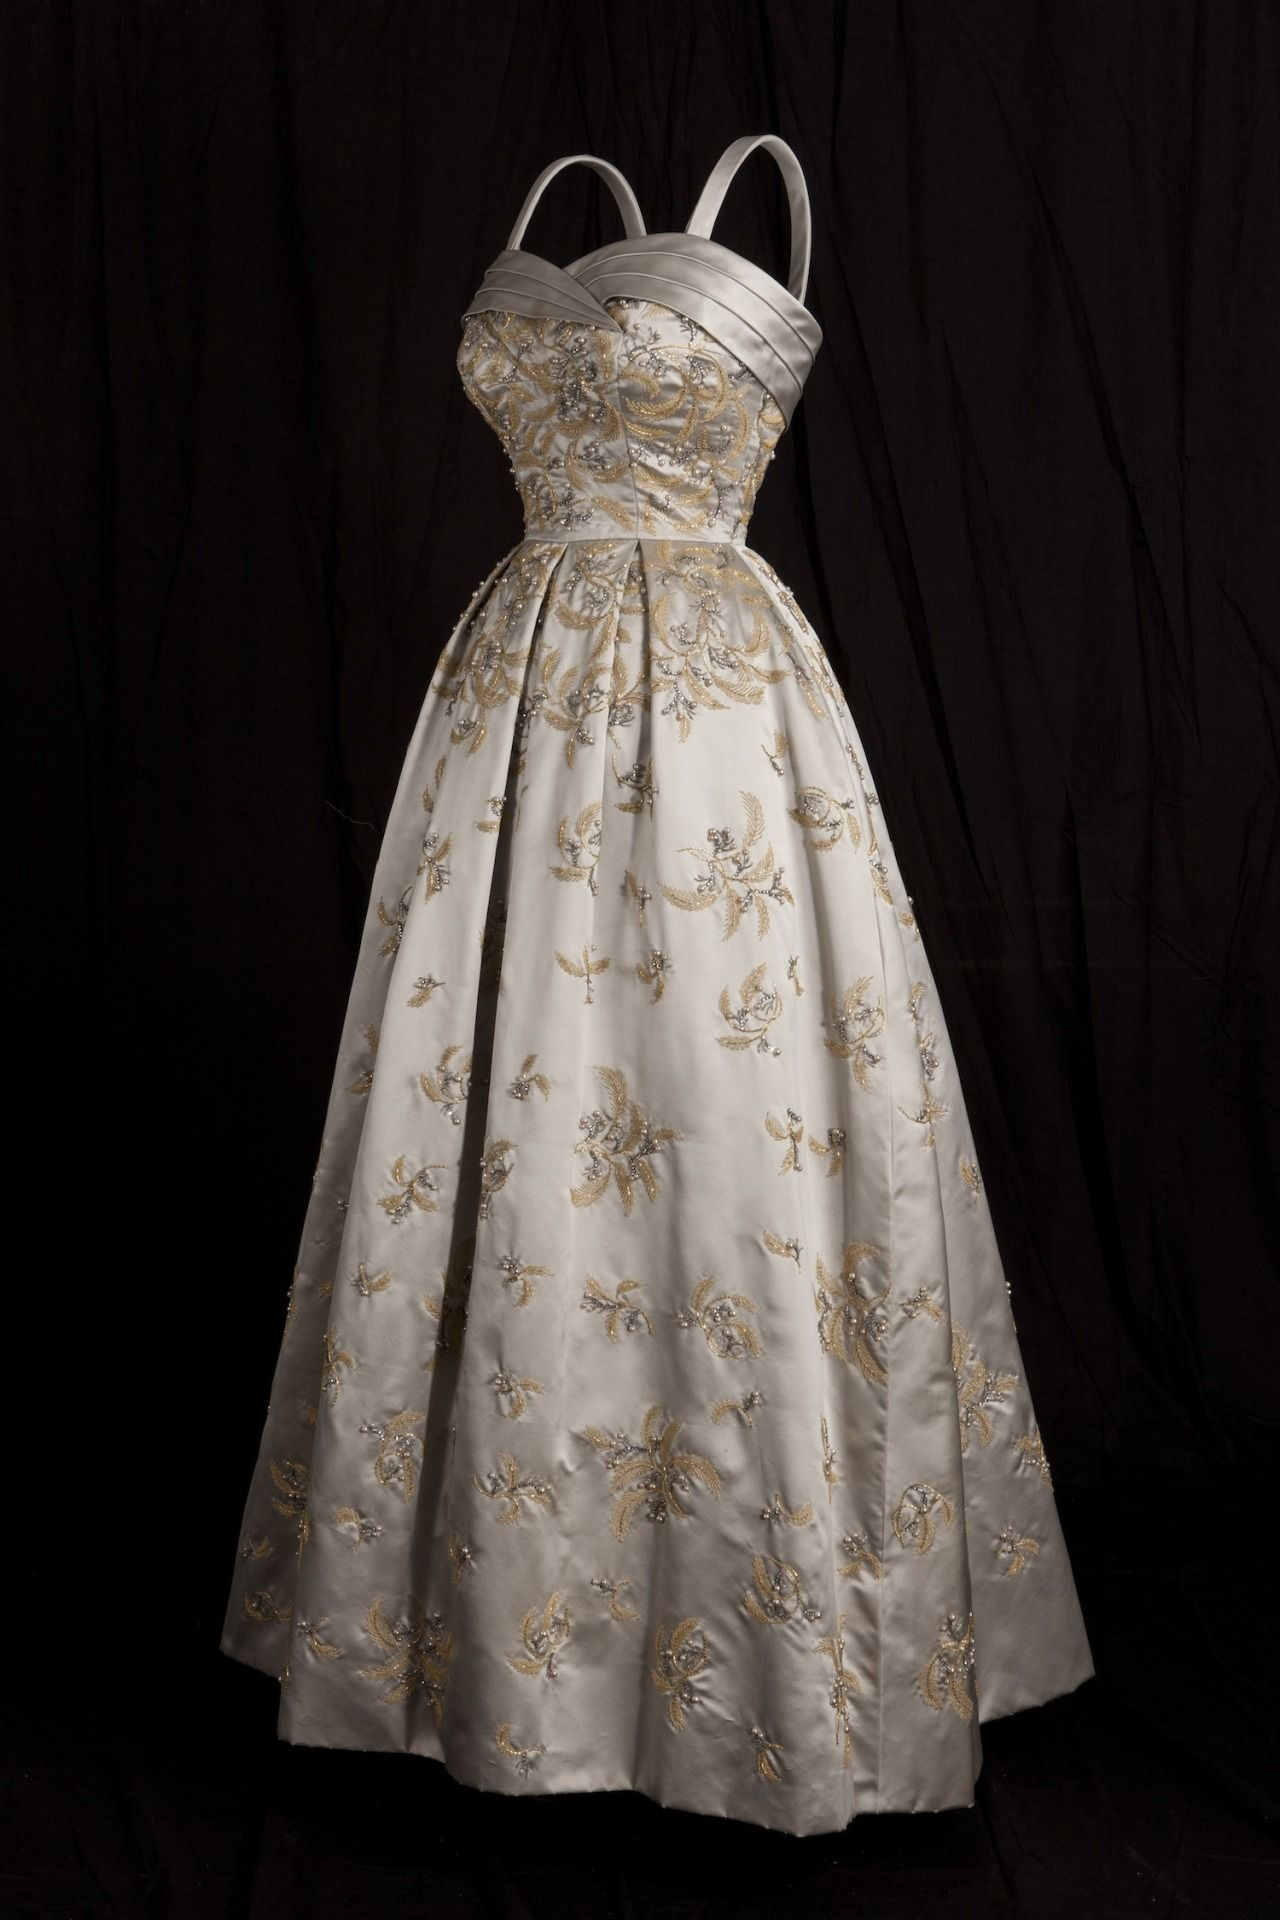 fripperiesandfobs: Evening dress designed by Hardy Amies ...